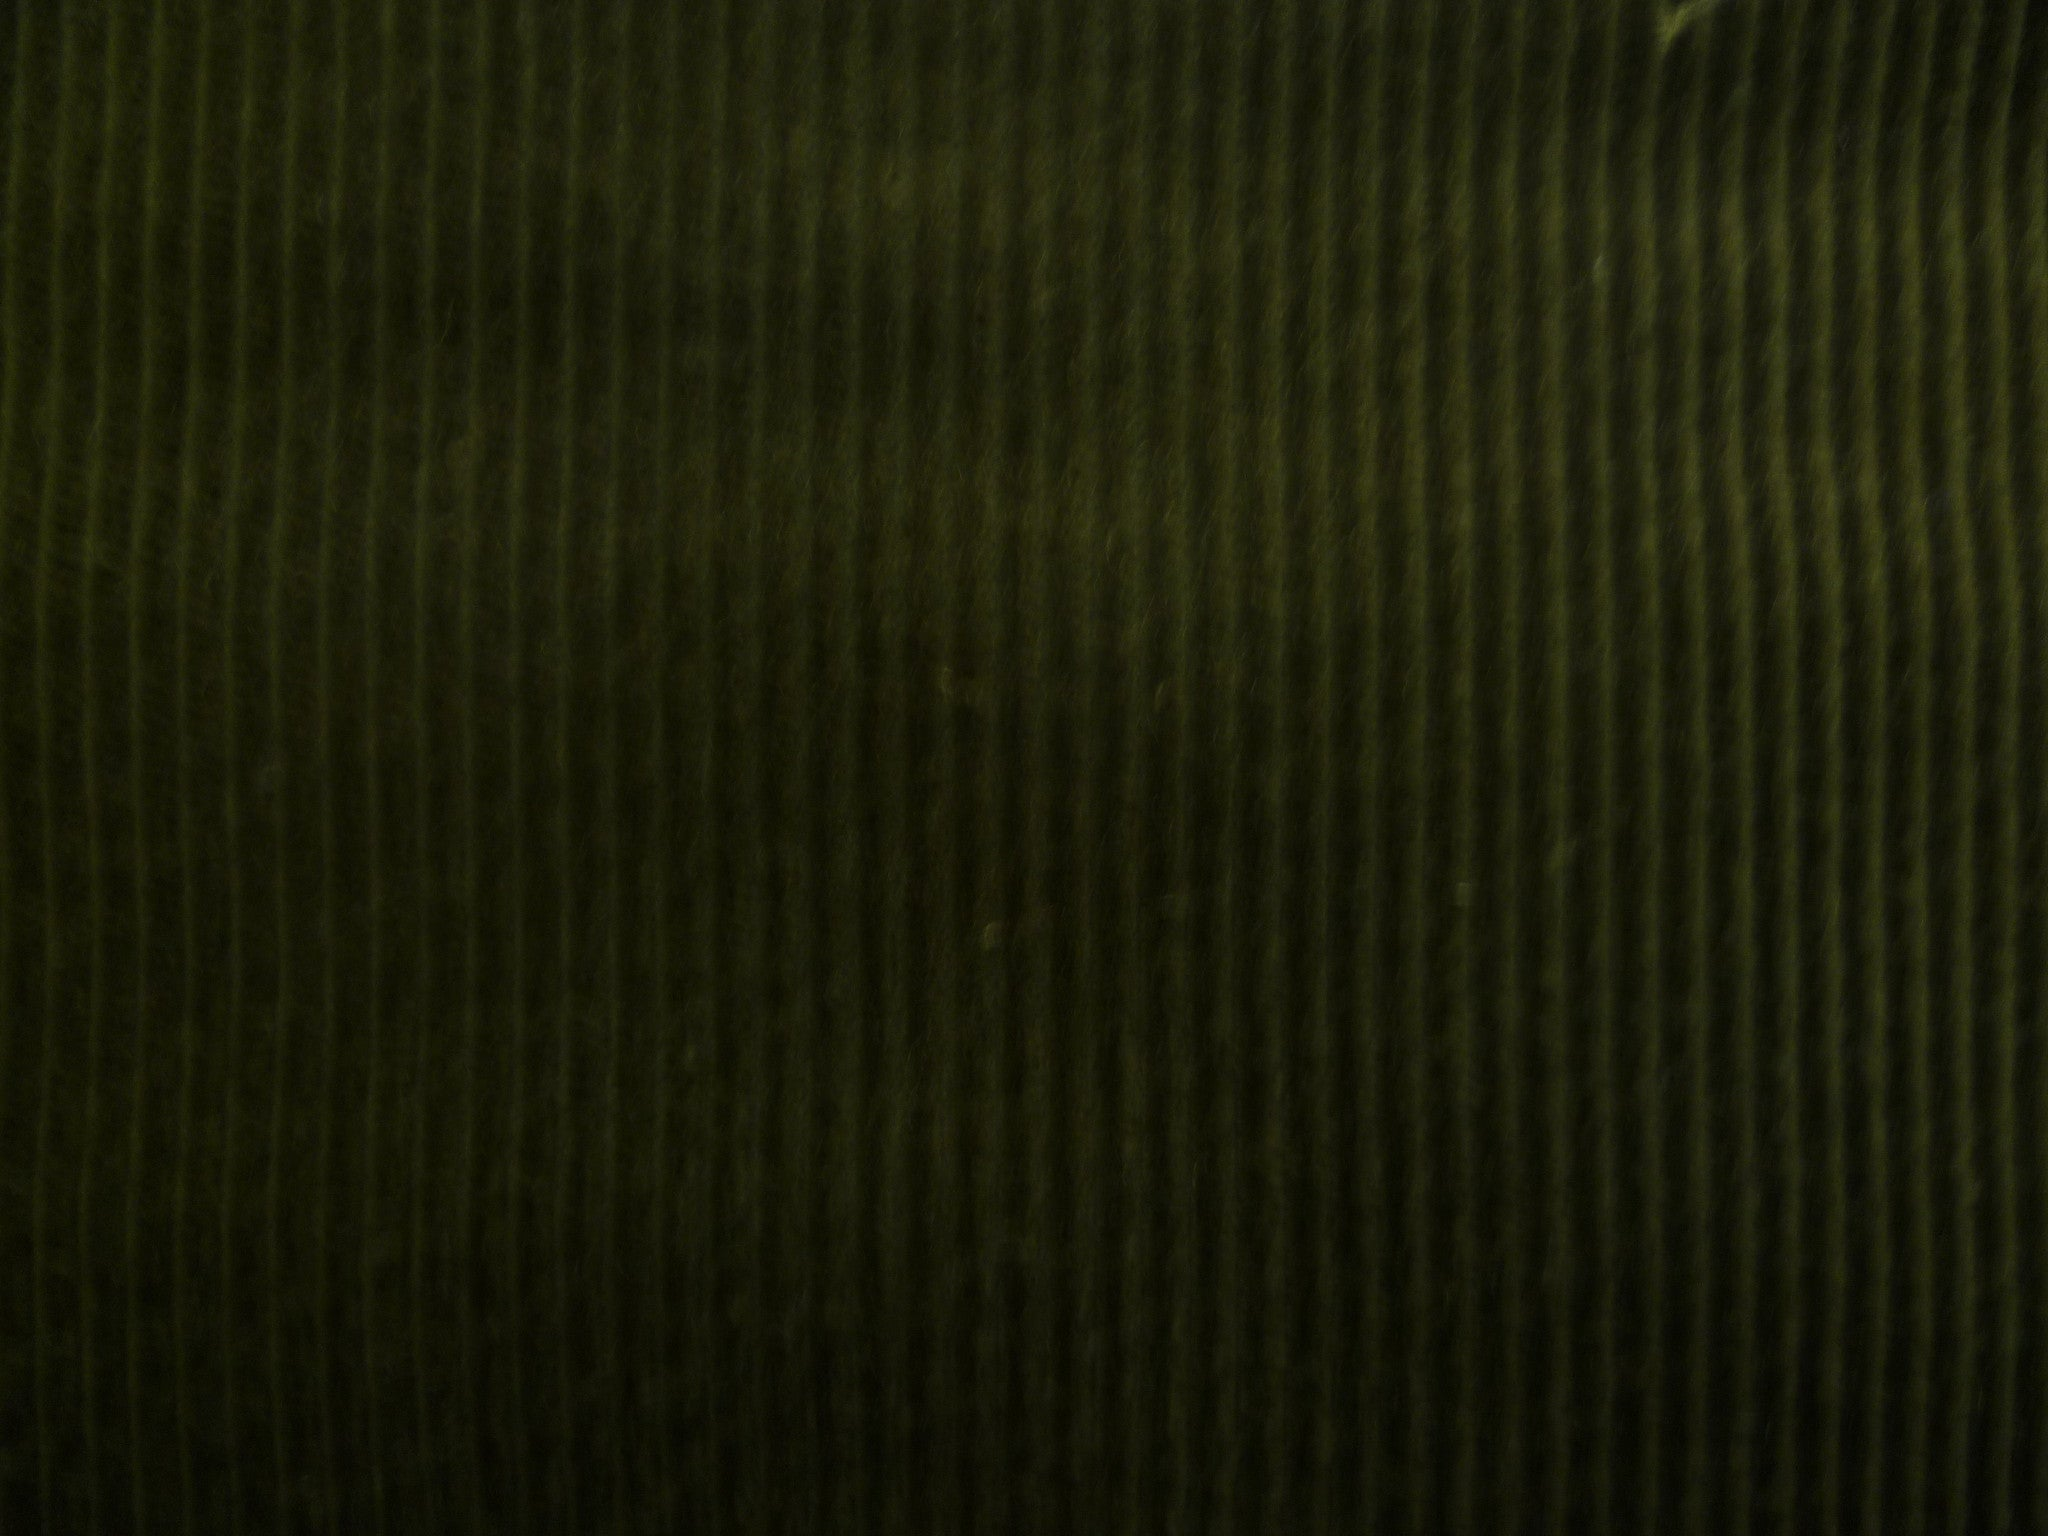 Thin Wale Forest Green Corduroy, 100% German cotton.  Limited Quantity